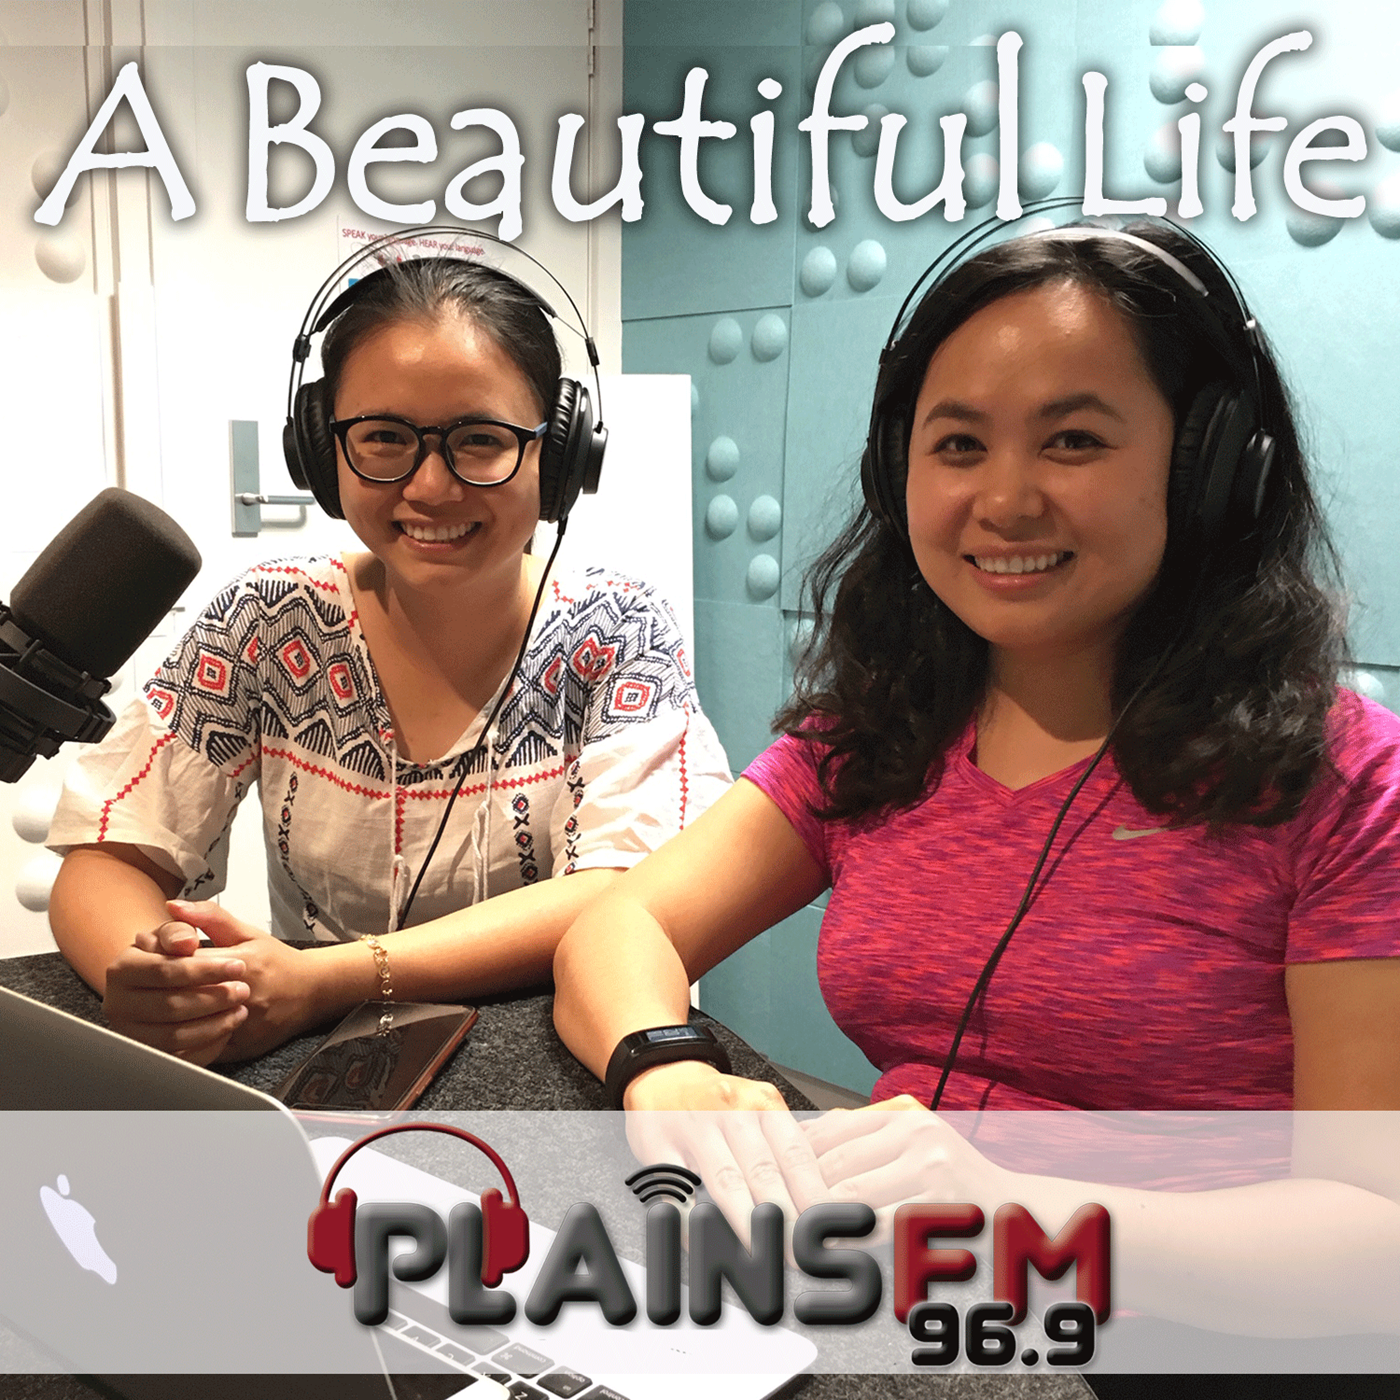 A Beautiful Life-22-08-2019 - Music